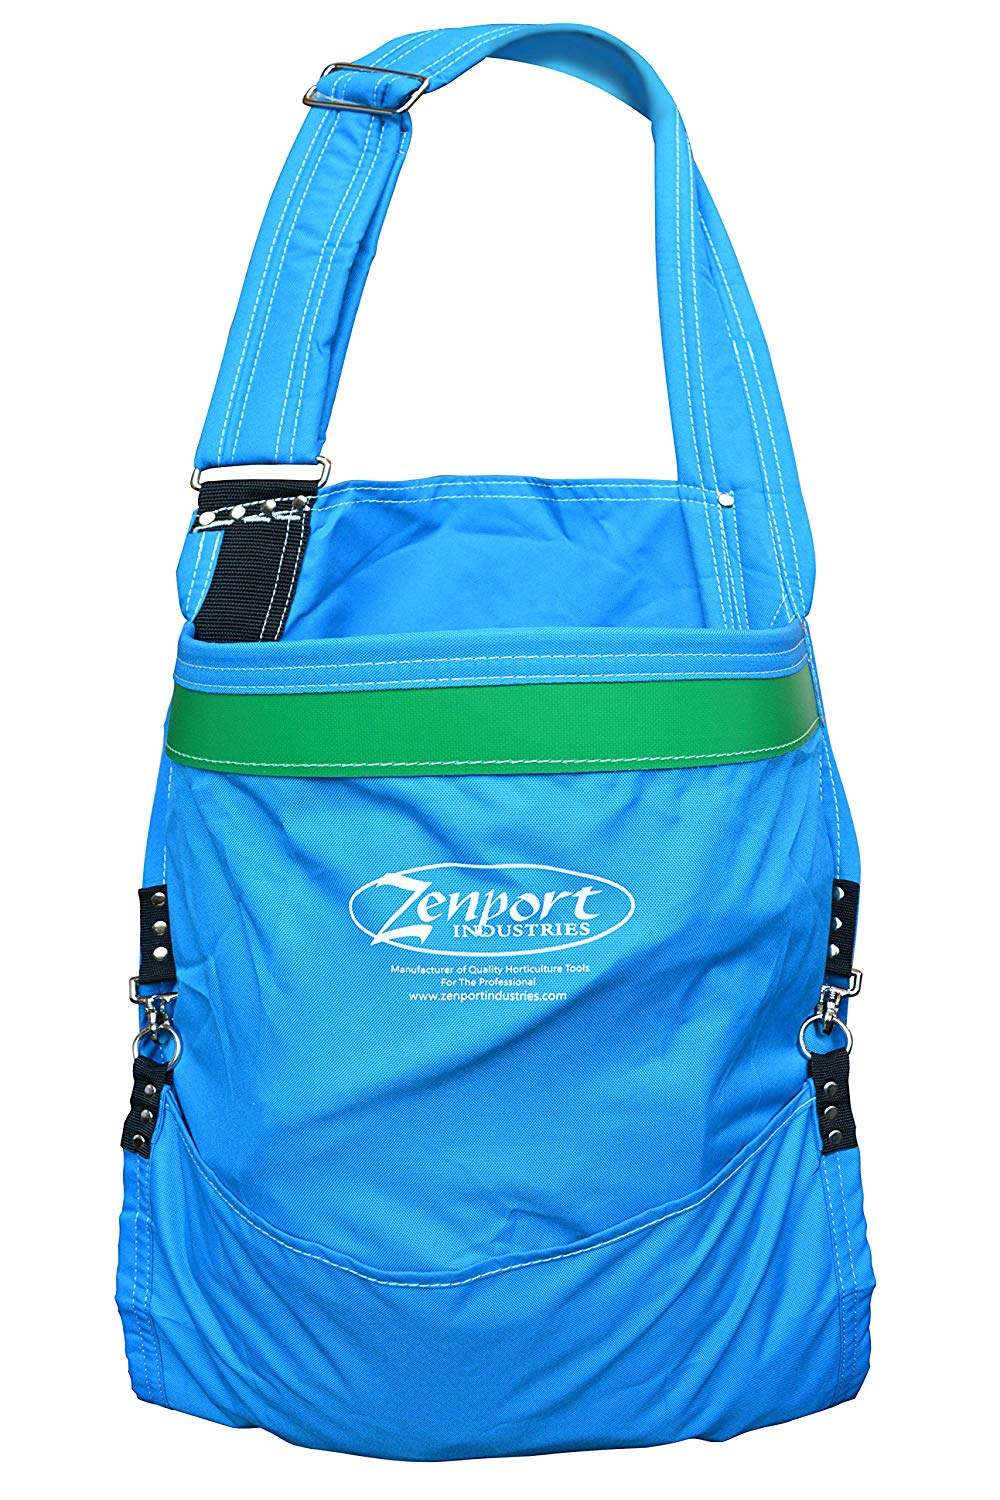 Zenport Picking Bag AG413 80-Pound Sling Soft Shell récolte de fruits Sac de cueillette